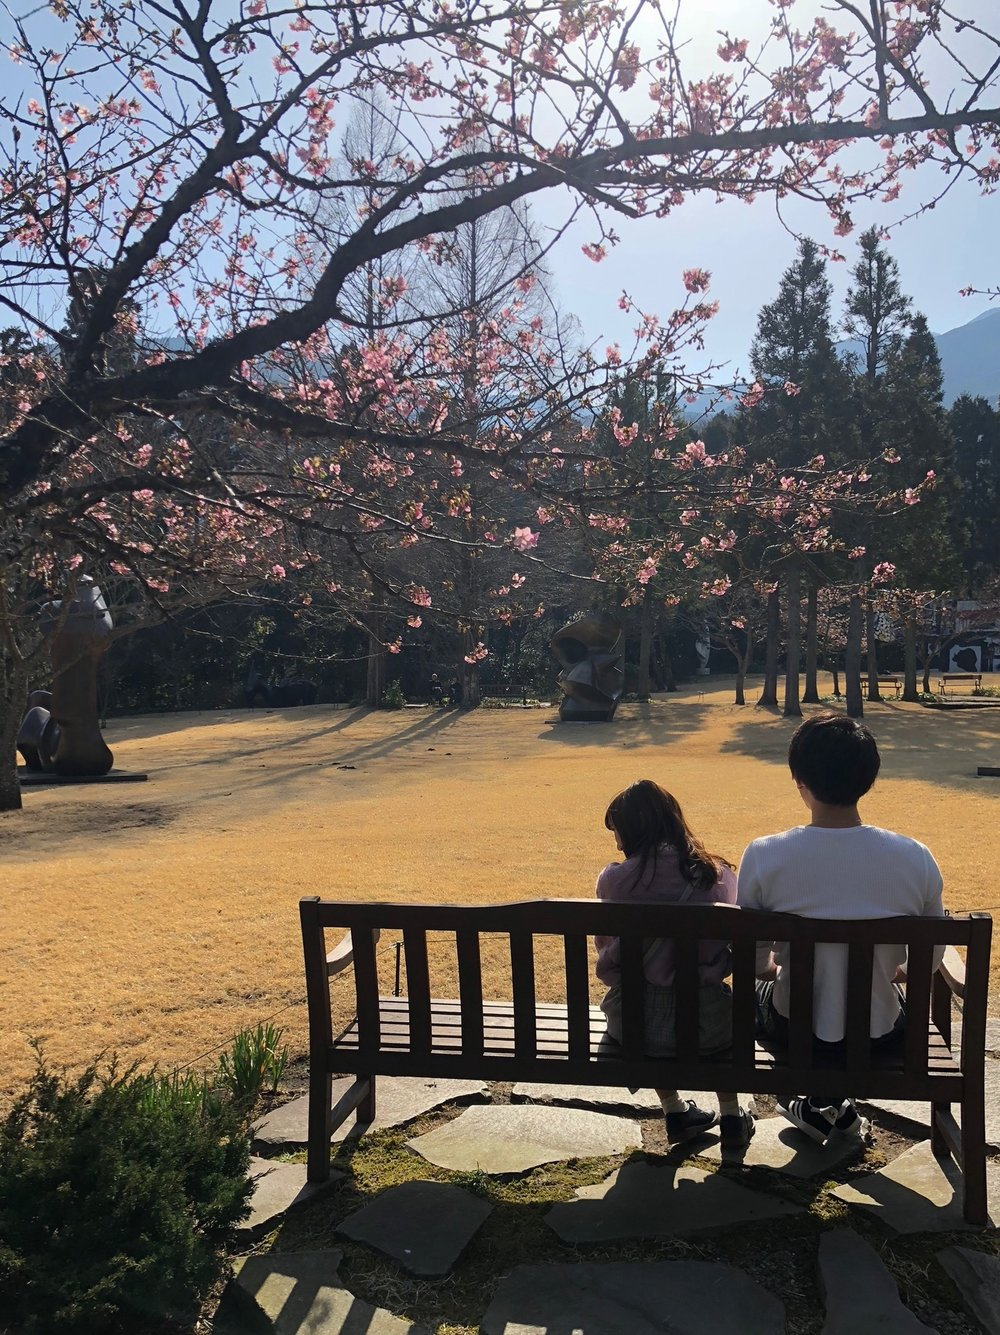 A cute couple taking in the view under some plum blossoms.